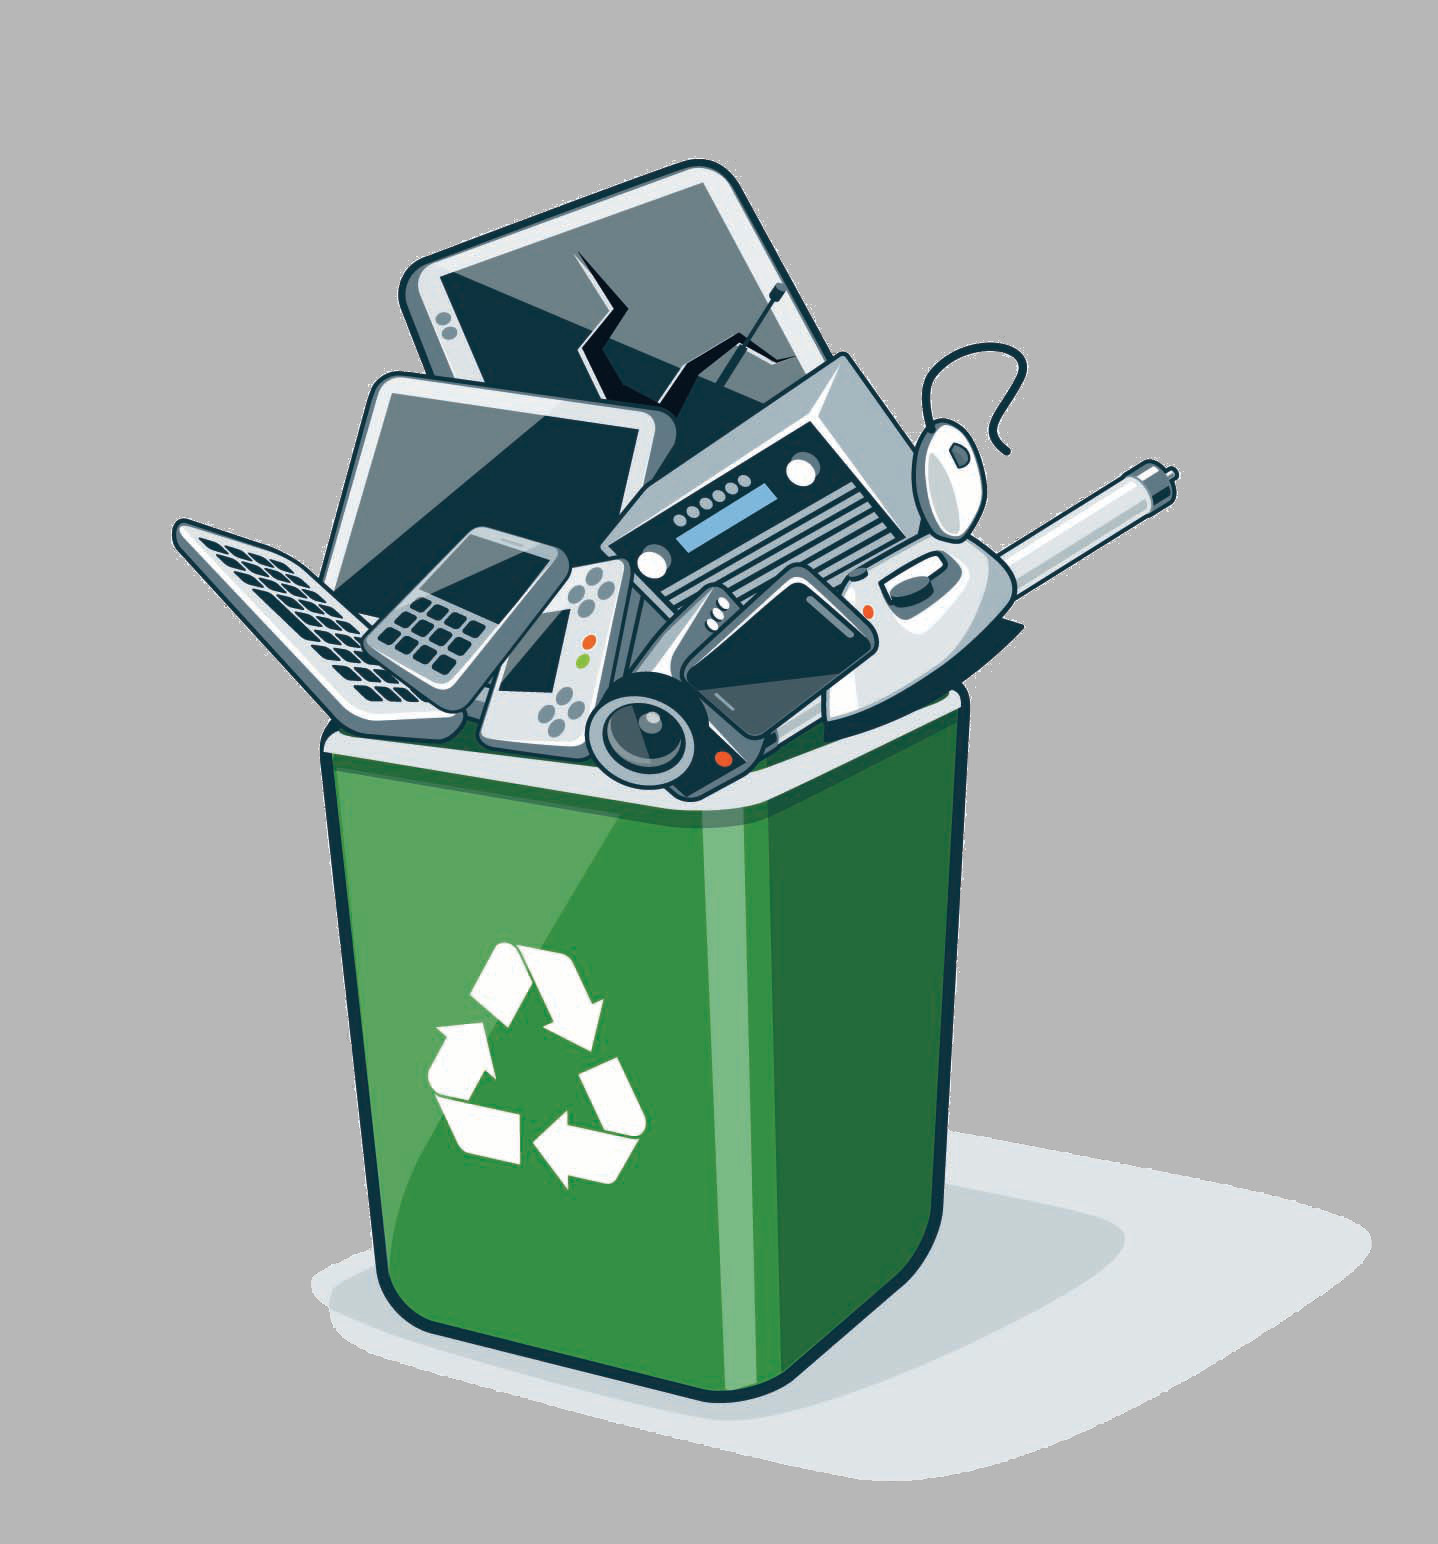 recycle-ewaste-squareish-gray.jpg